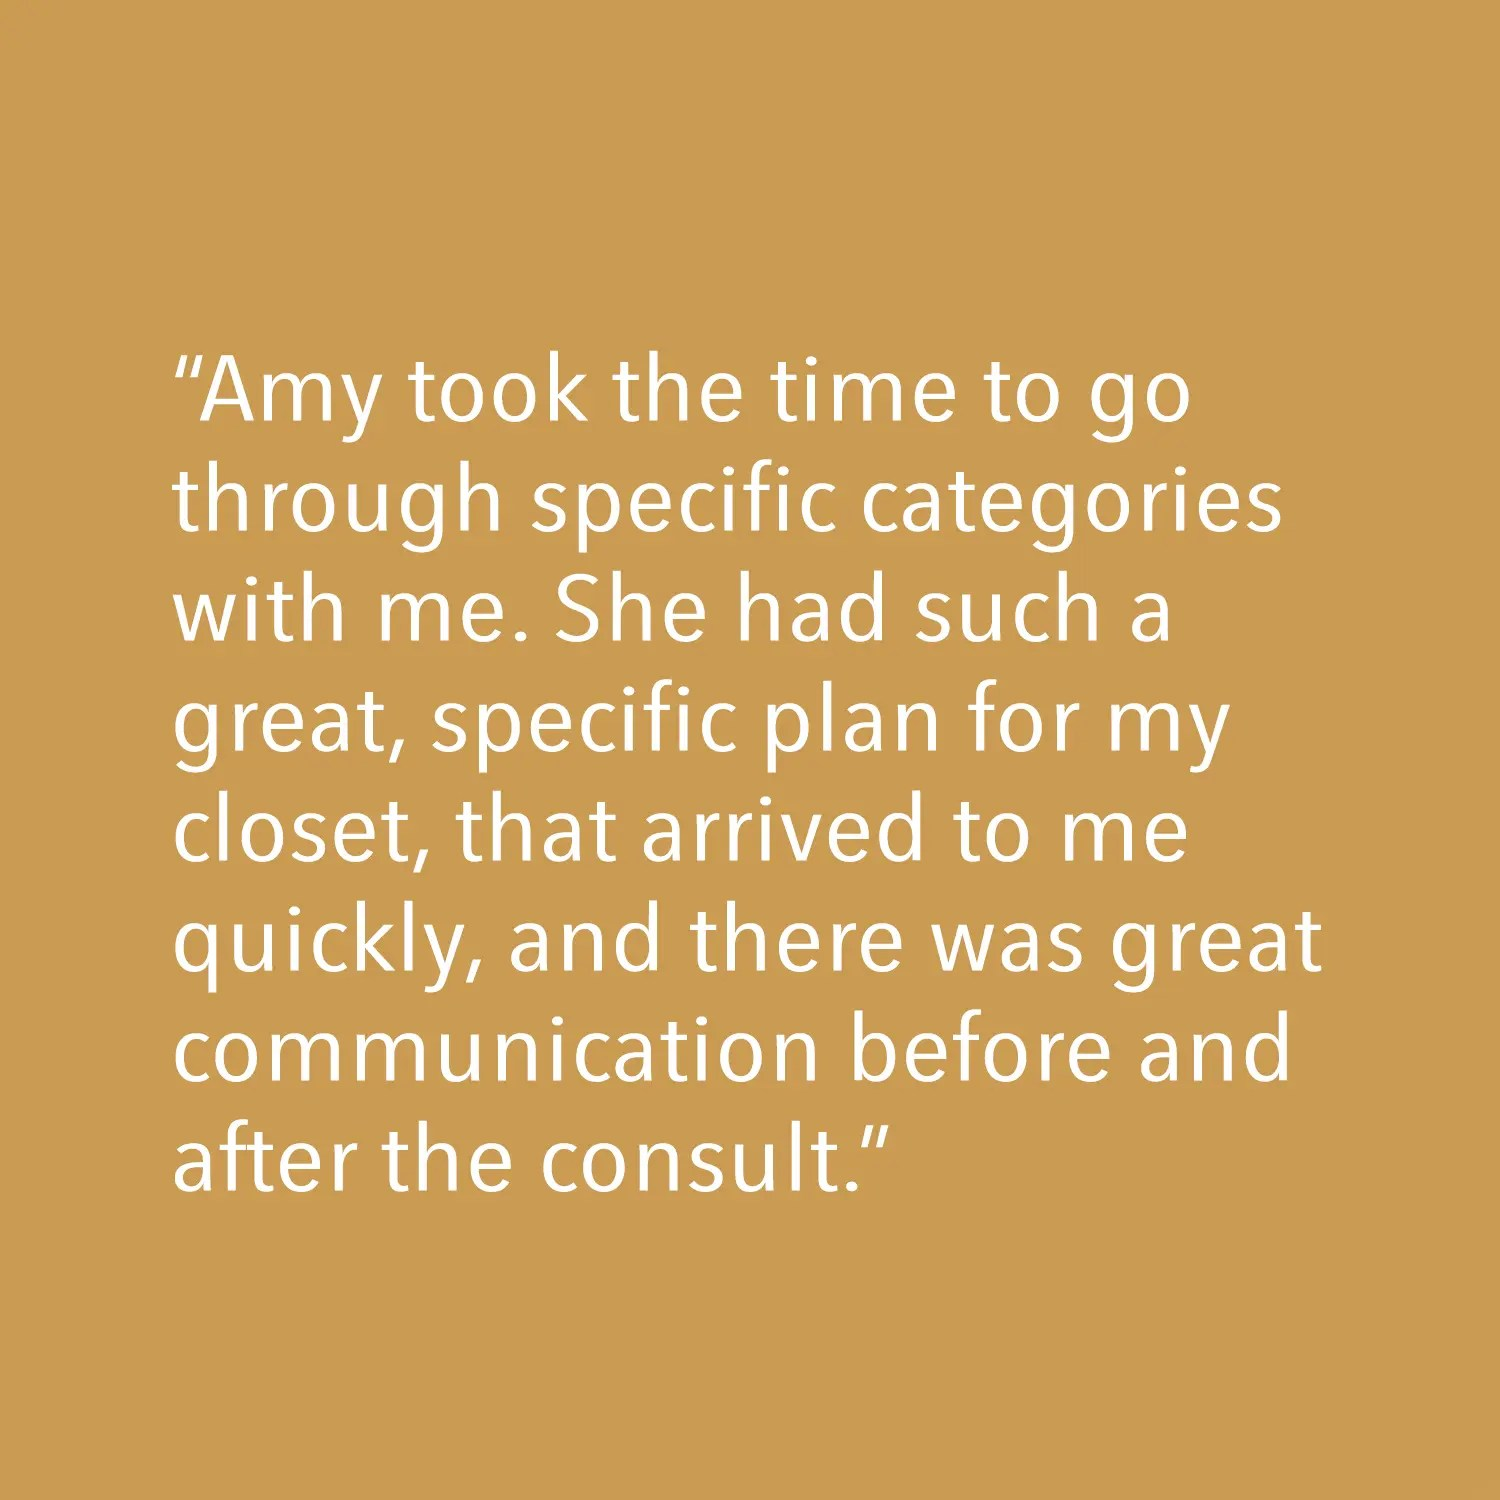 Testimonial - Amy took the time to go through specific categories with me